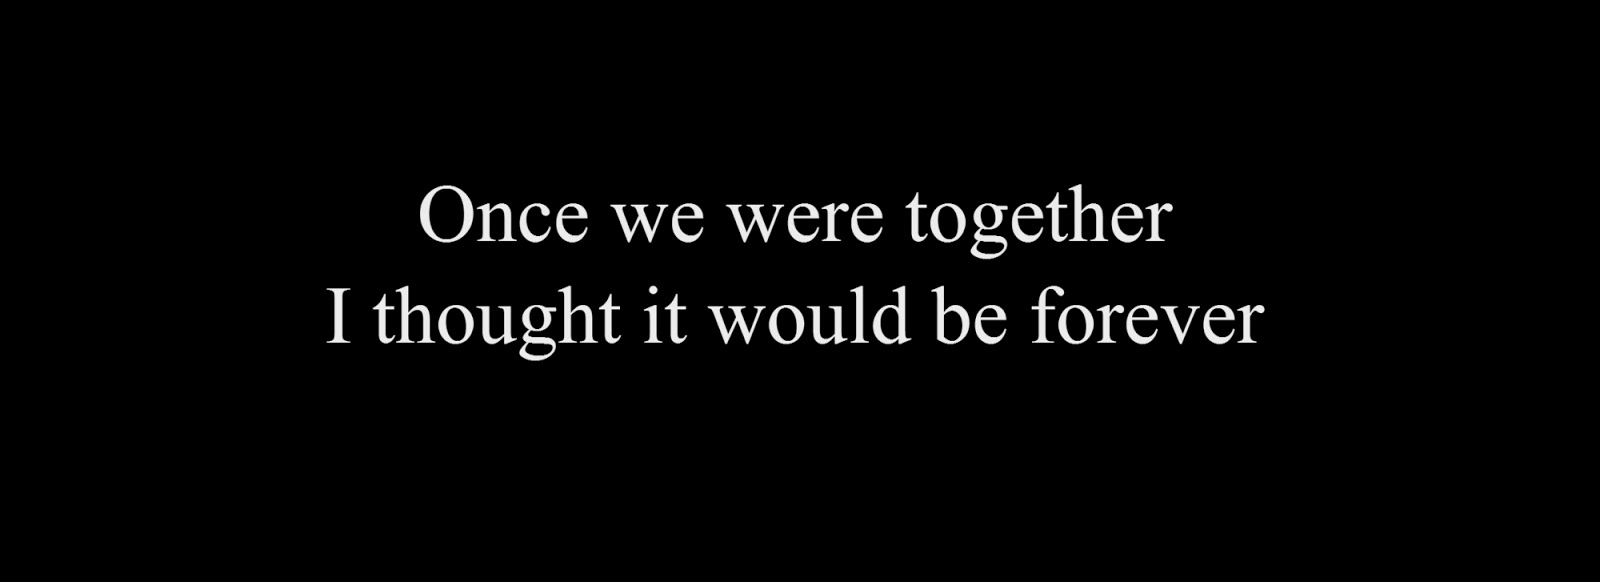 Once we were together. I thought it would be forever.